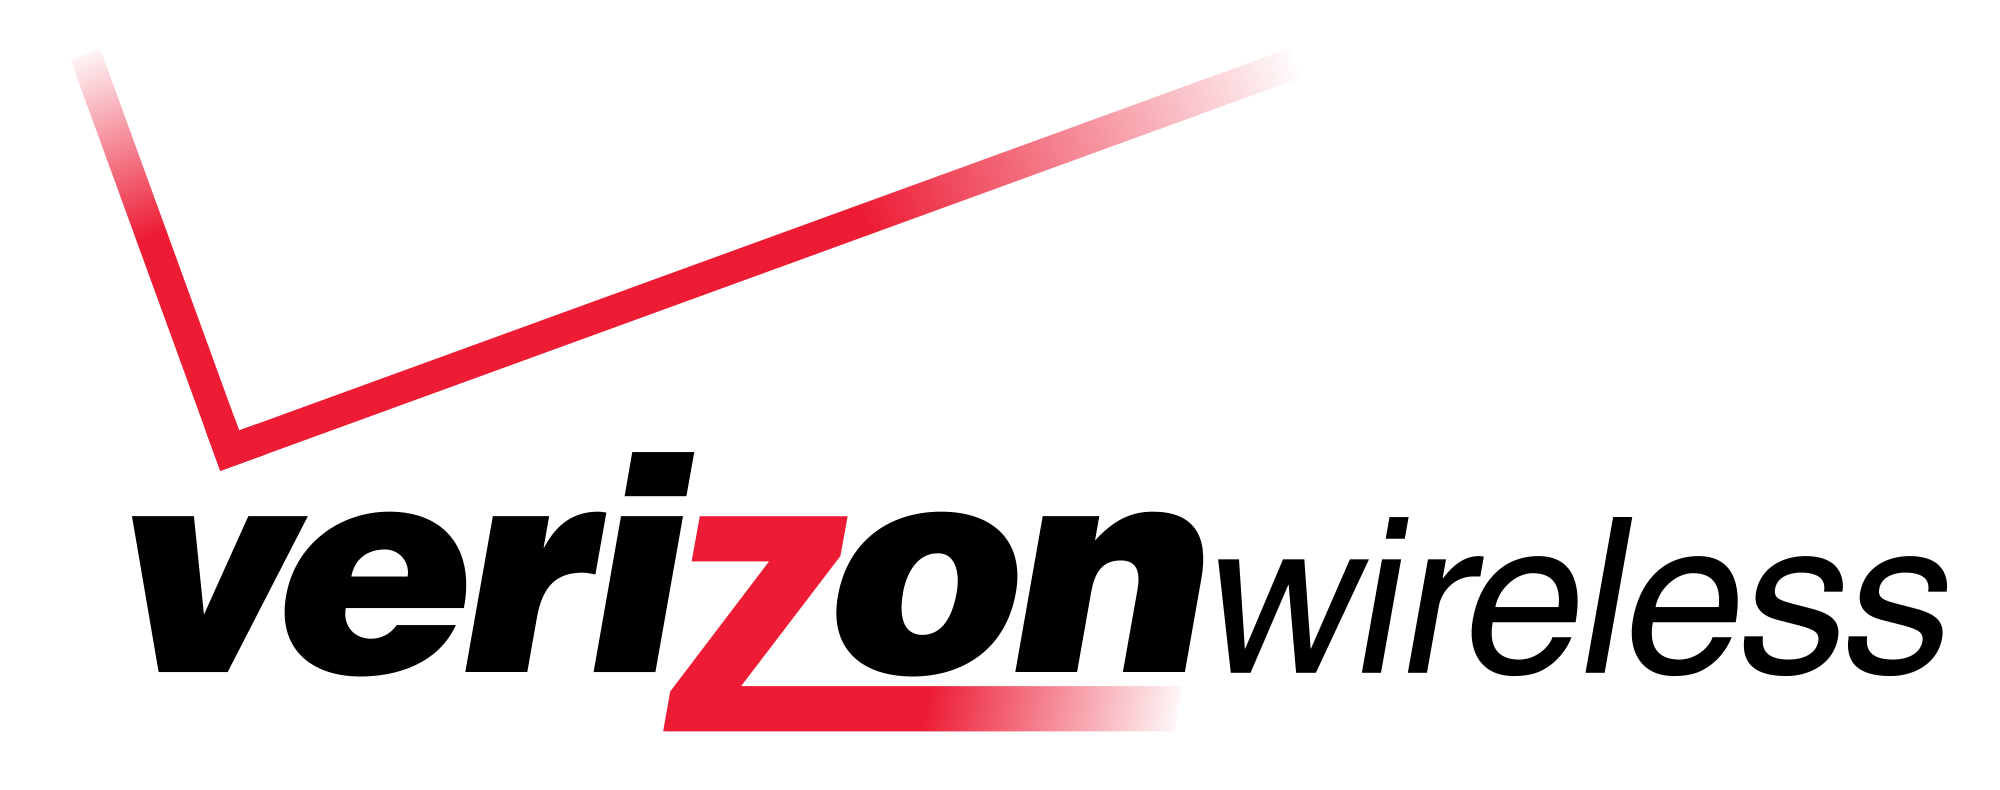 Verizon-Wireless-Logo.jpg